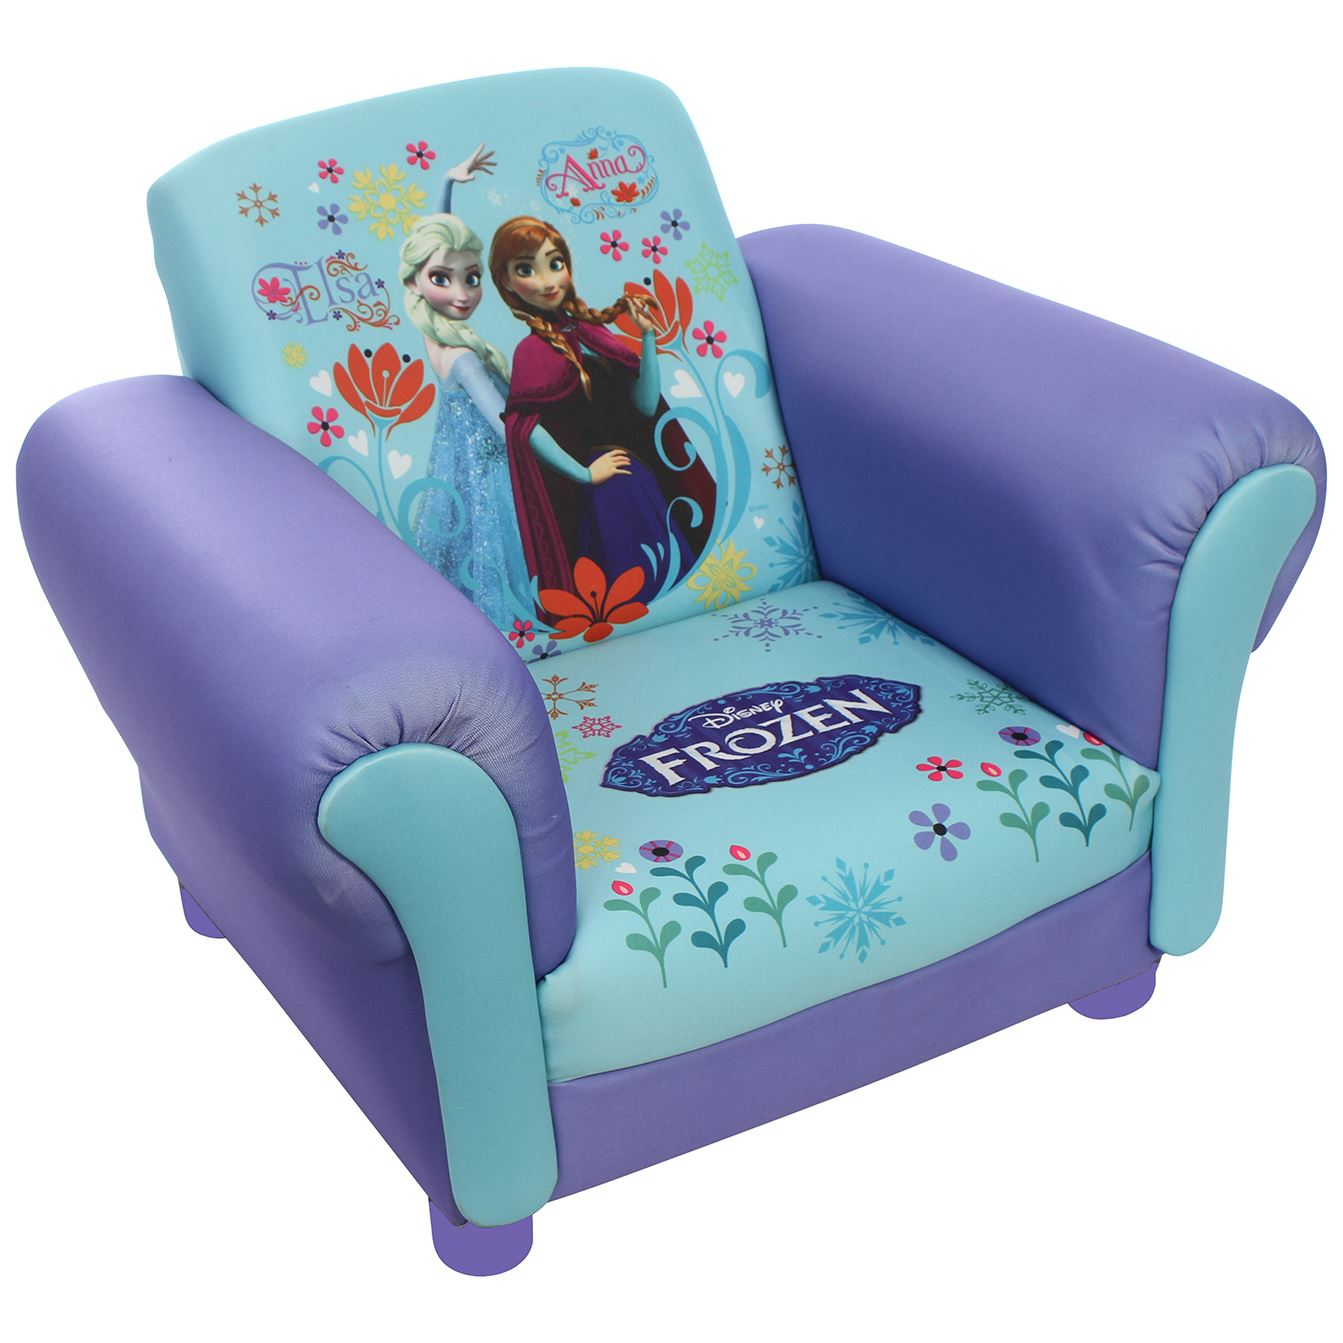 Toddler Couch Children 39s Princess Frozen Elsa And Anna Upholstered Chair